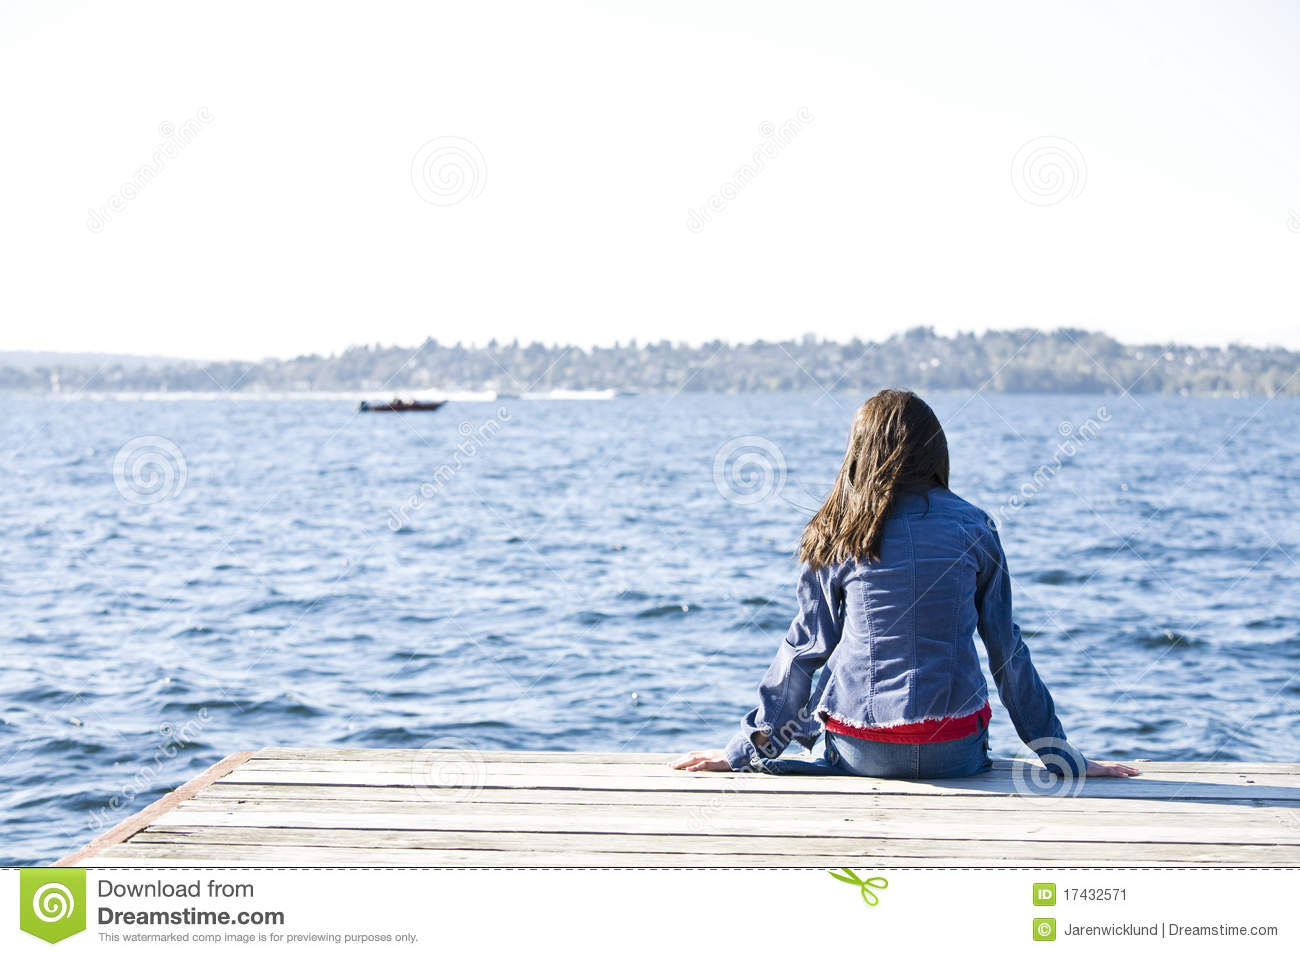 Girl Sitting Alone On Dock By Lake Stock Image - Image: 17432571